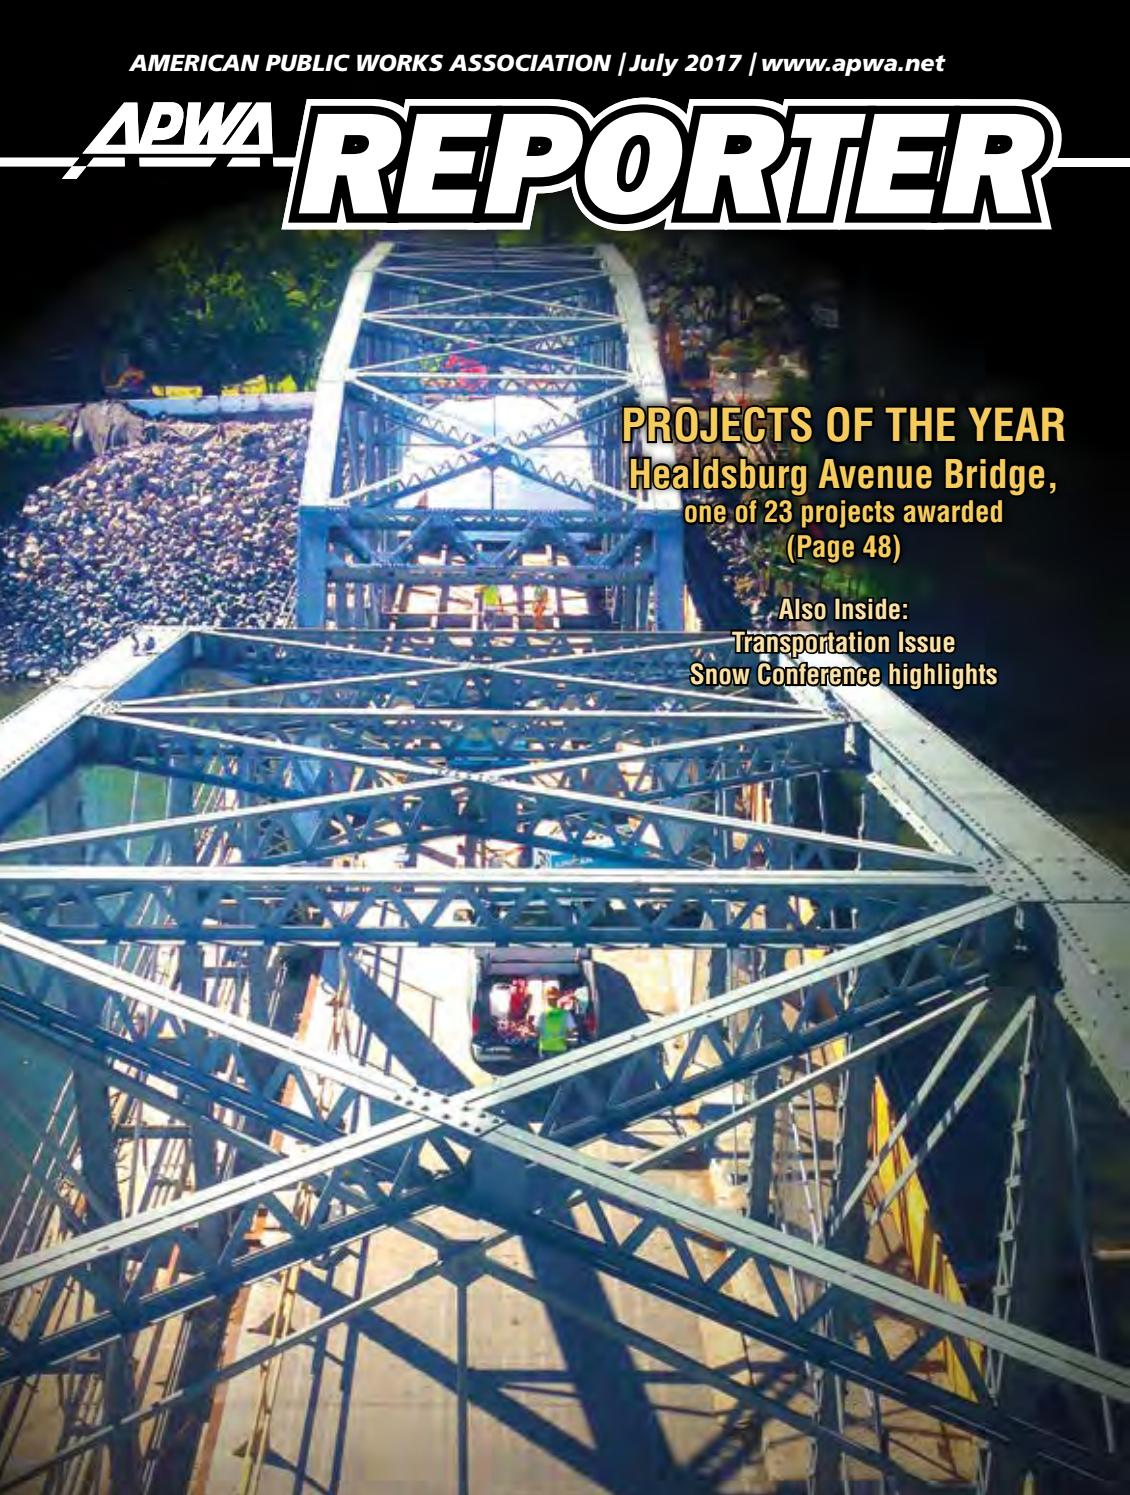 Apwa reporter july 2017 issue by american public works apwa reporter july 2017 issue by american public works association issuu kristyandbryce Choice Image